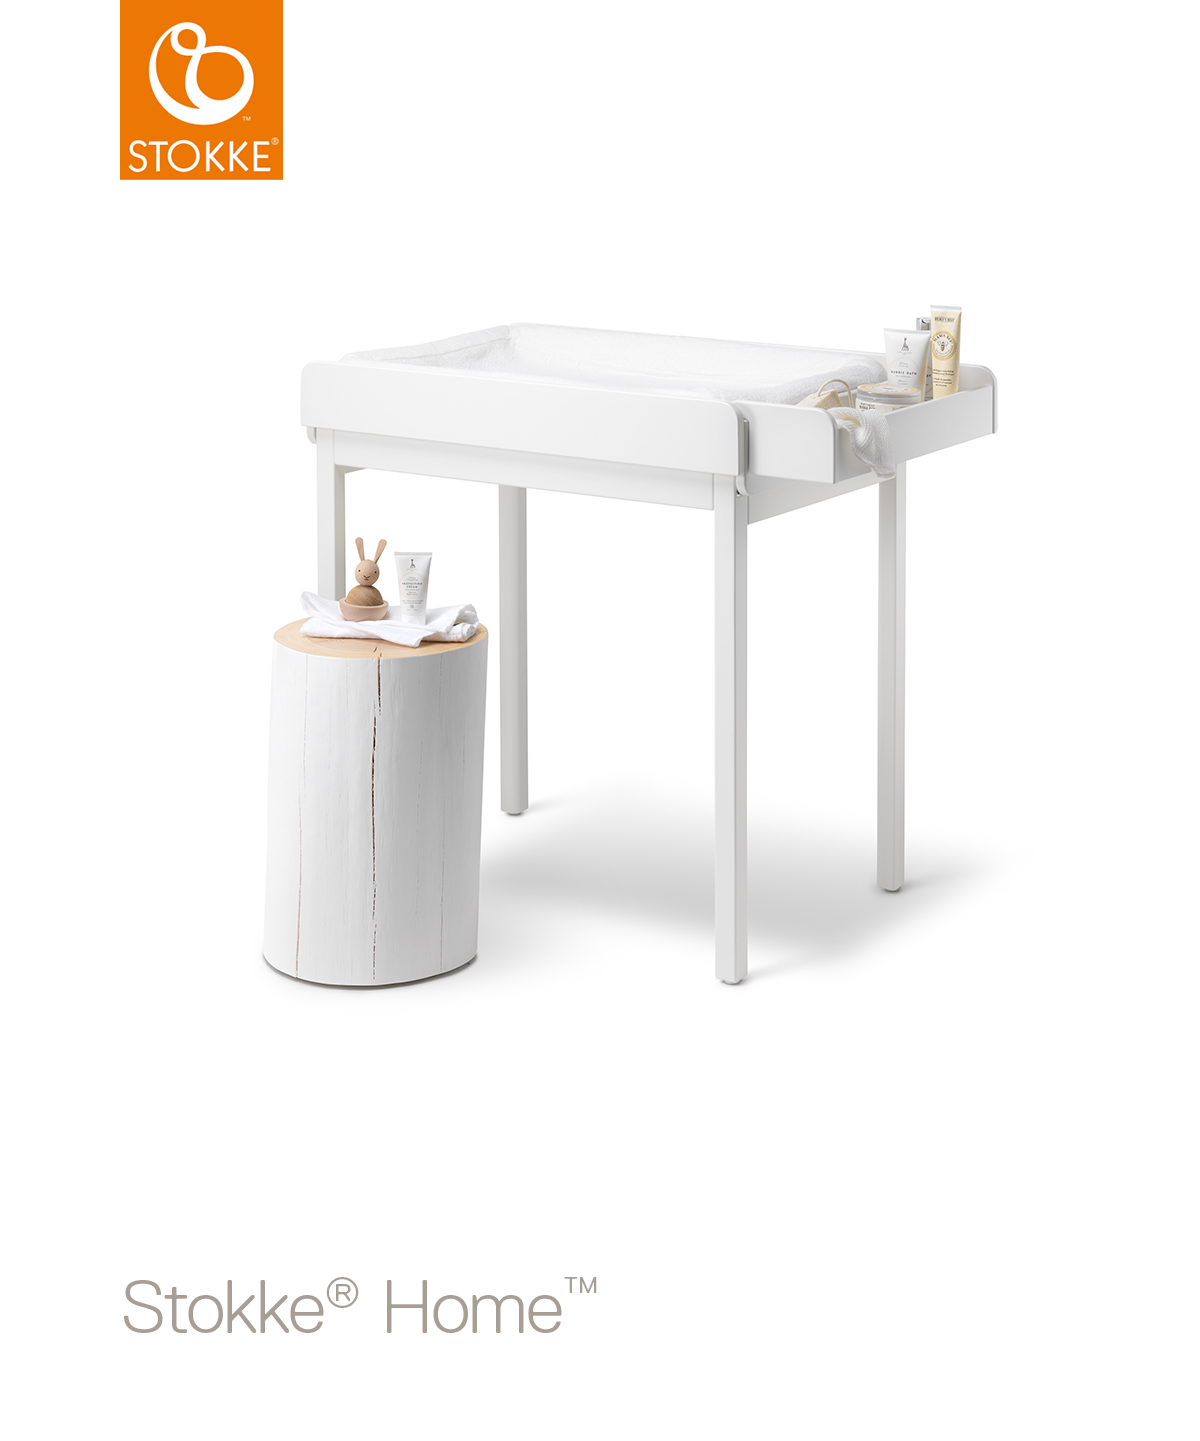 Order The Stokke Home Changer Online Baby Plus